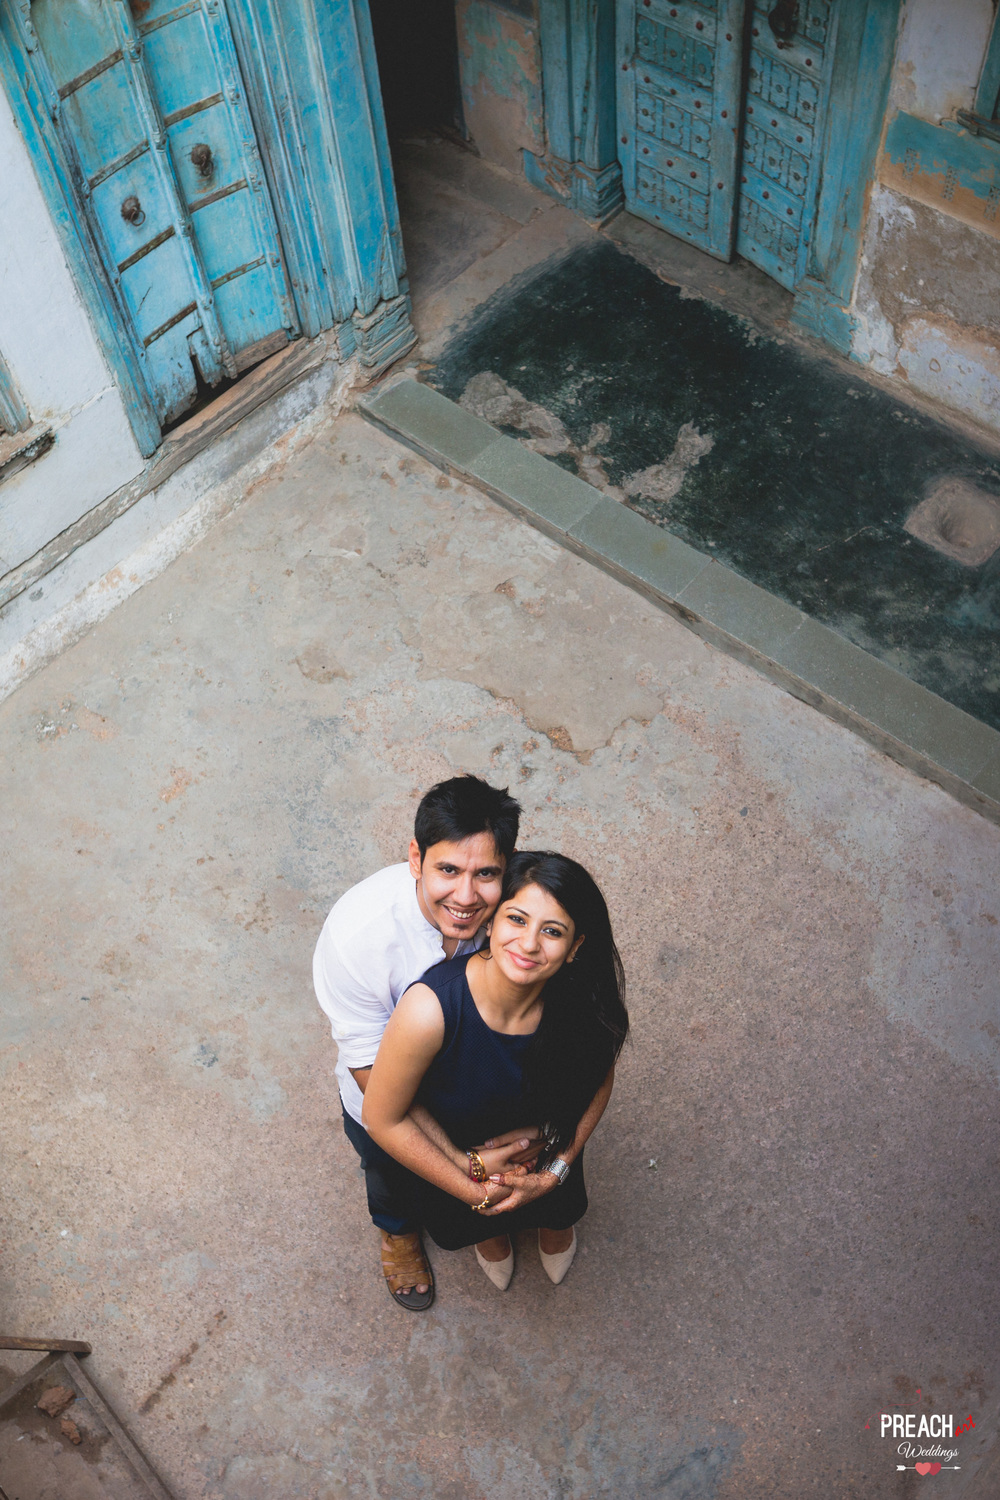 V&M_PRE-WEDDING SHOOT_AHMEDABAD OLD CITY_PREACH ART-28.jpg